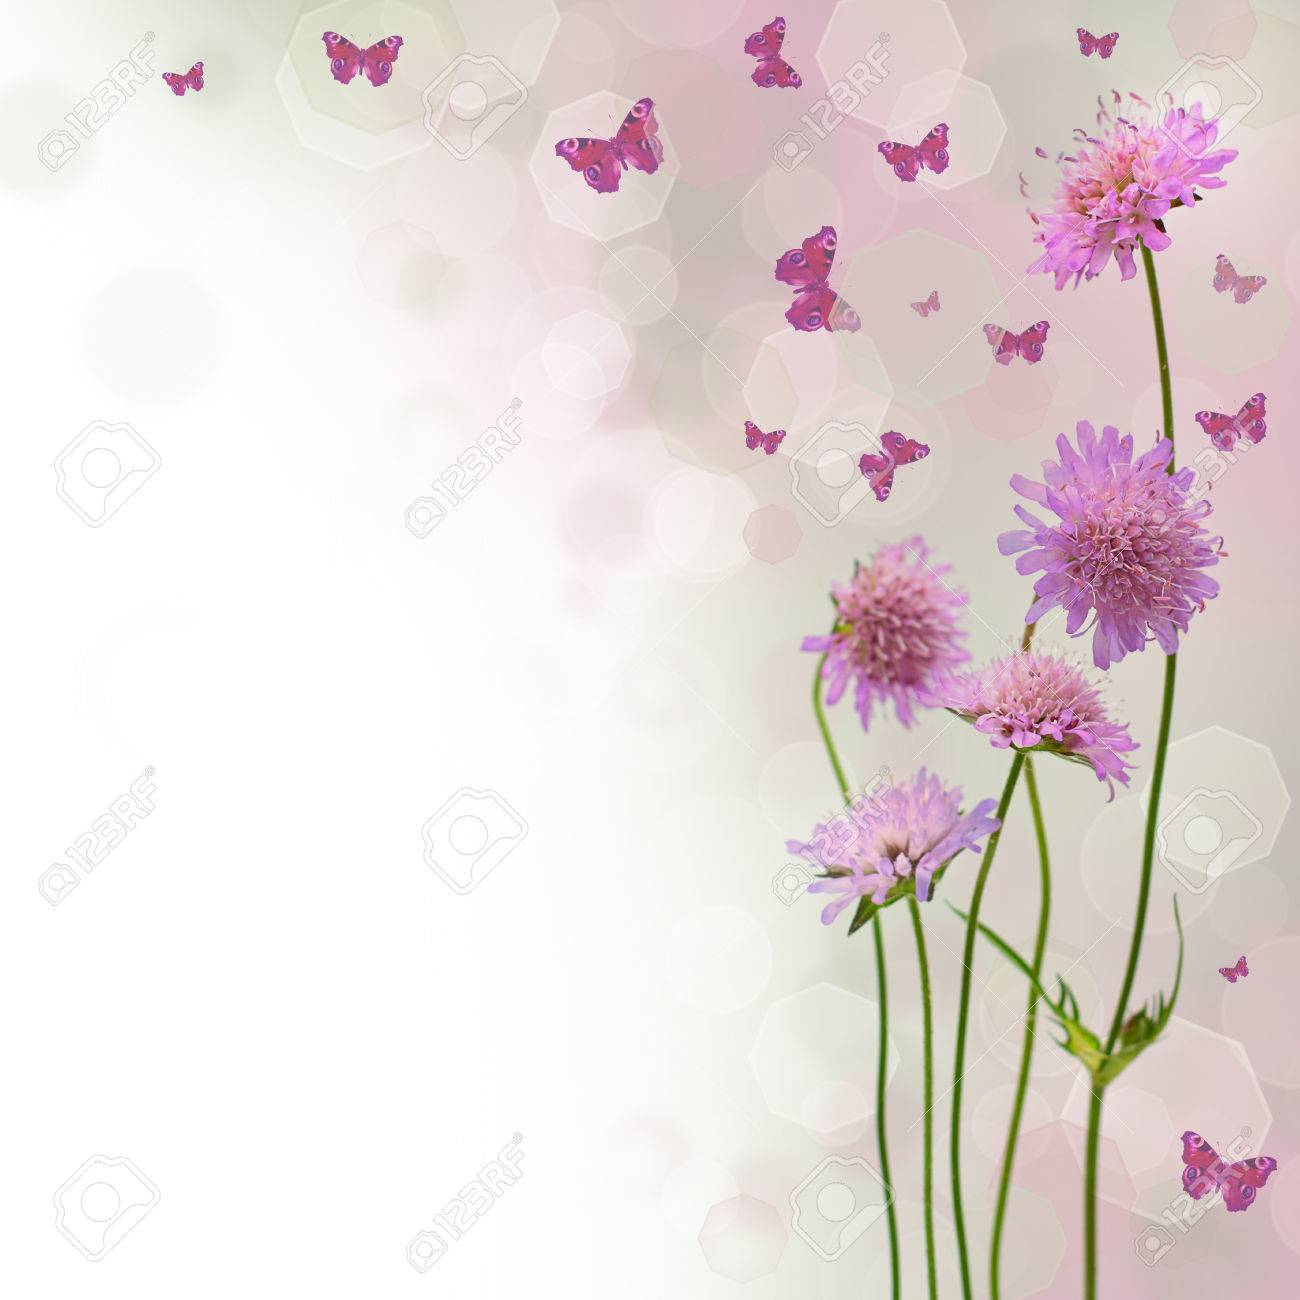 Fiori E Farfalle.Blossom Background Blurred Floral Border With Flowers And